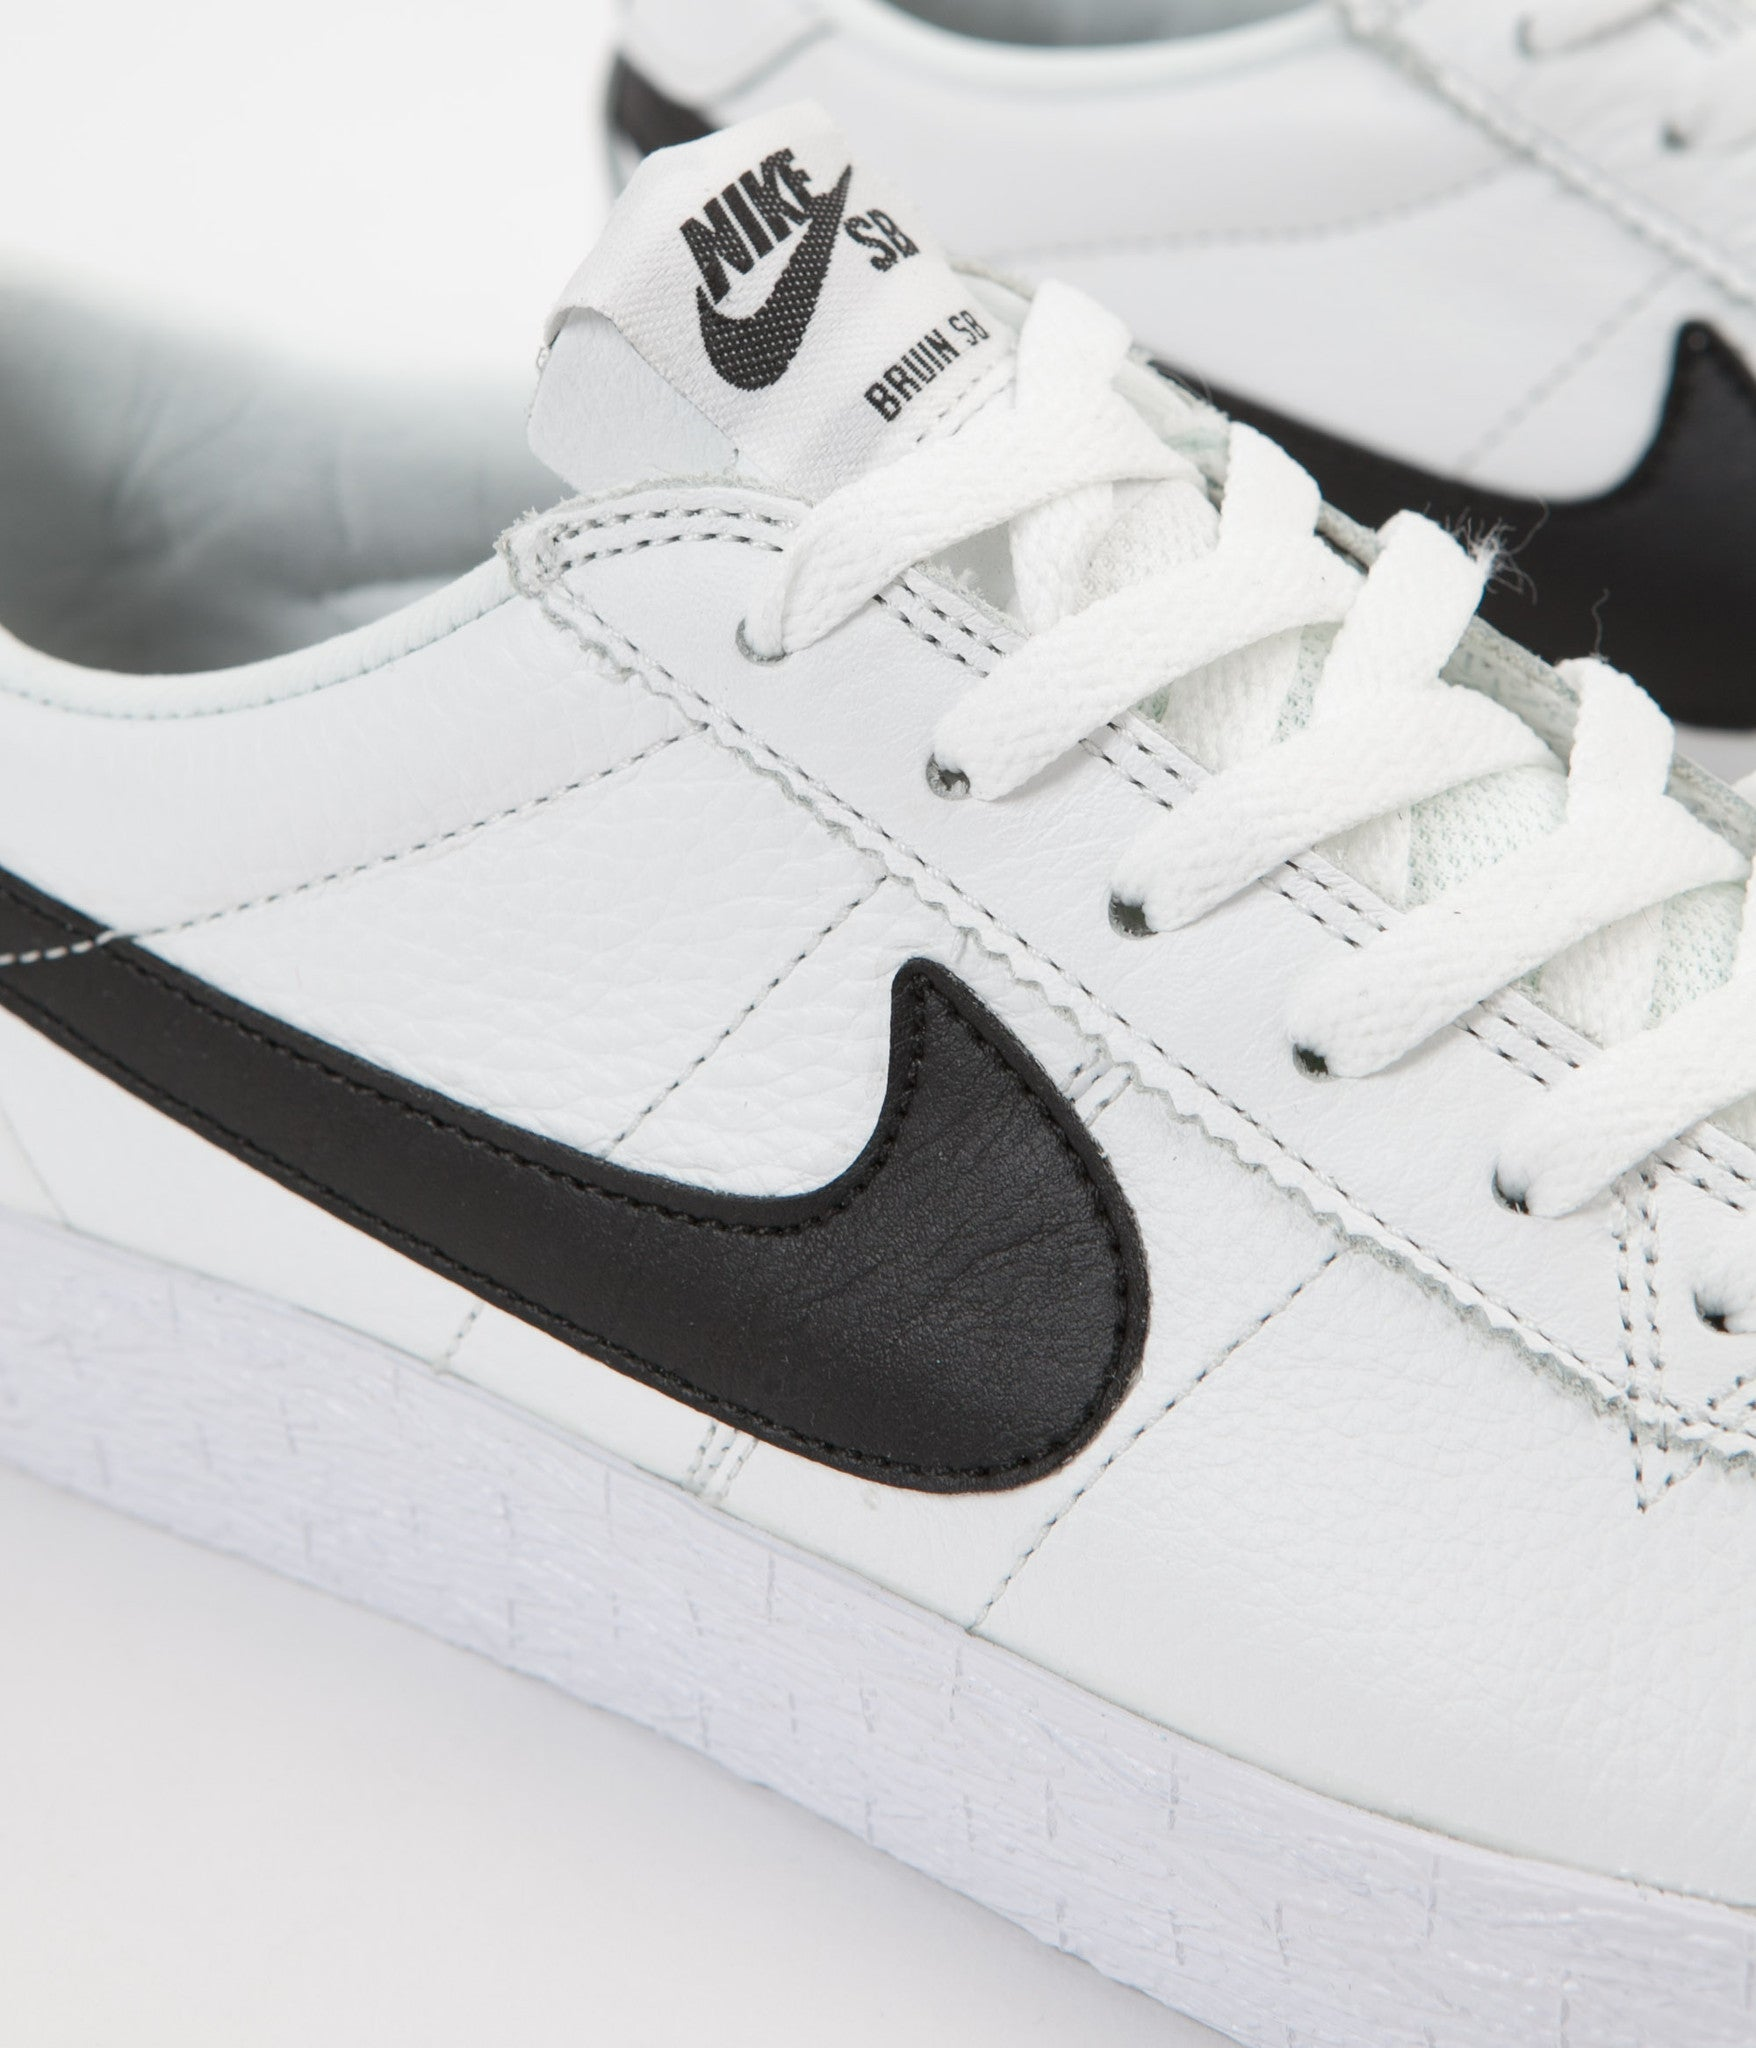 low priced f768f 11bdb ... Nike SB Bruin Premium SE Shoes - Summit White  Black - White ...